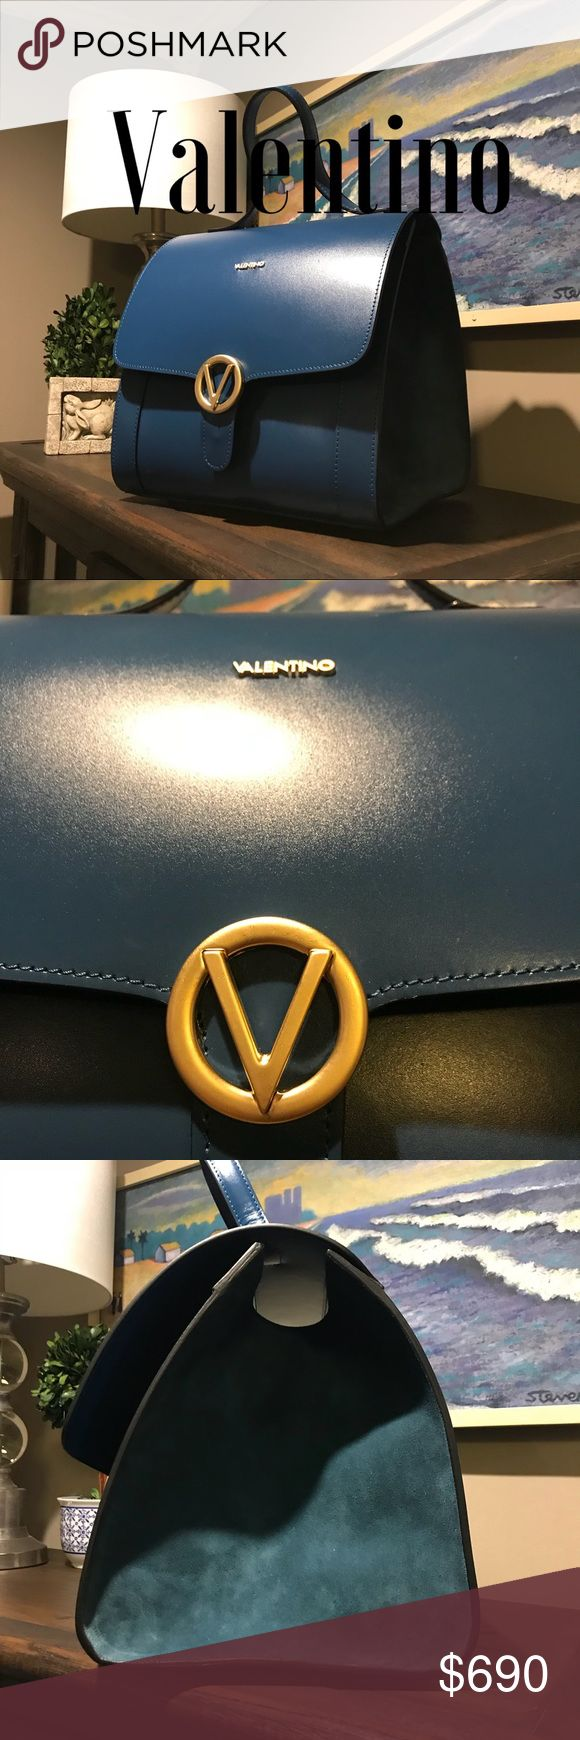 NWT Valentino XL Teal Blue Valentino Bag What a stunning bag!  NWT Teal Blue Doctor style bag.  So much room inside!!  Leather with Suede side panels-a real eye catcher! Mario Valentino Bags